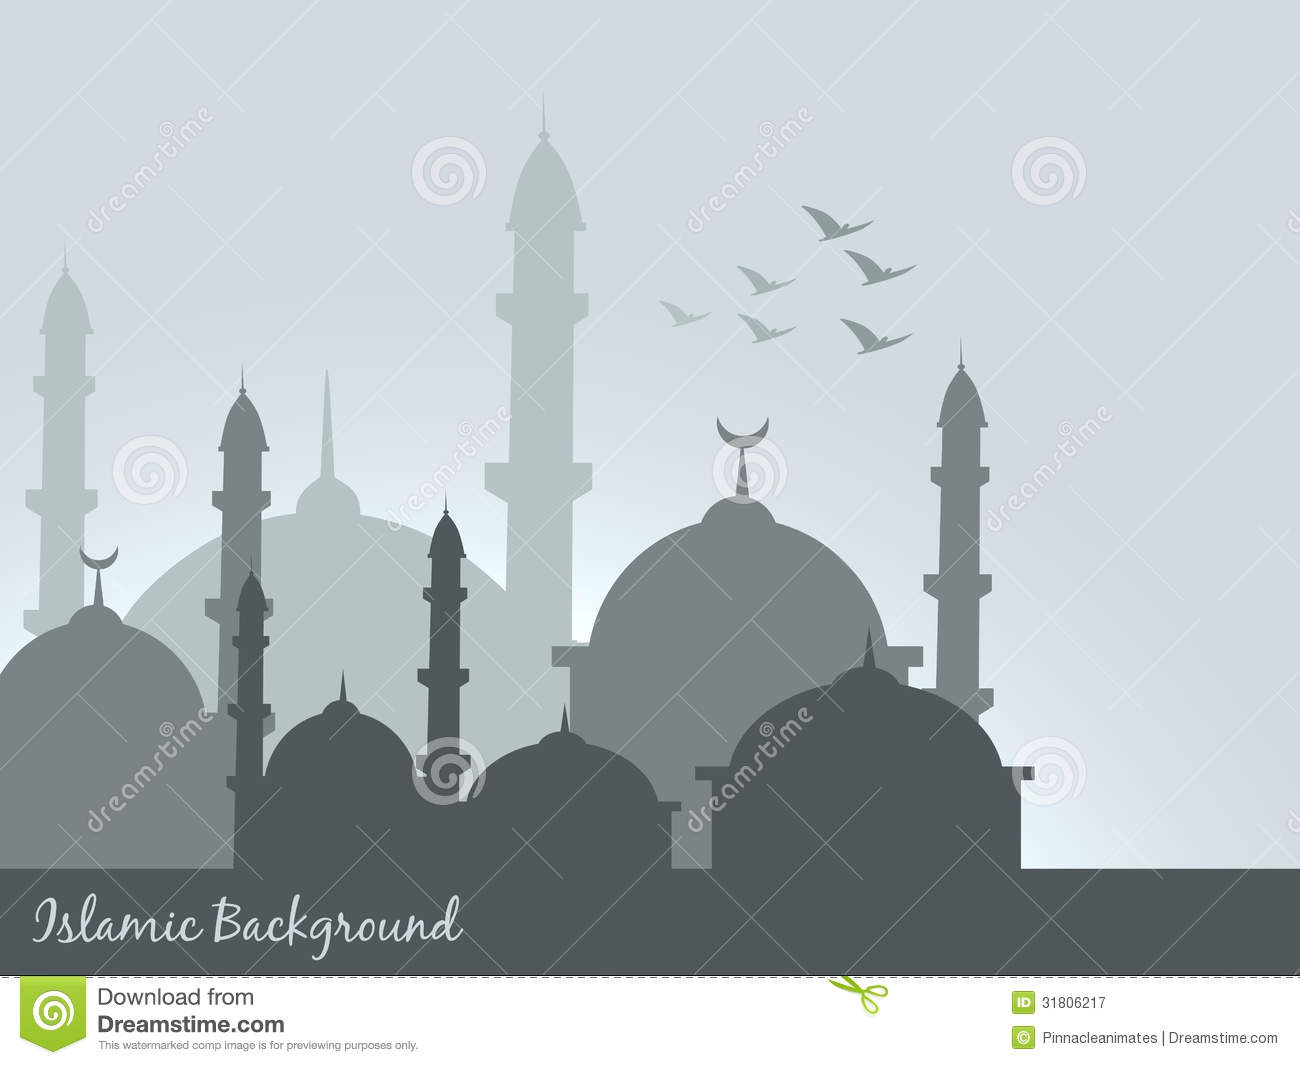 Islamic Background Stock Vector. Illustration Of Adha